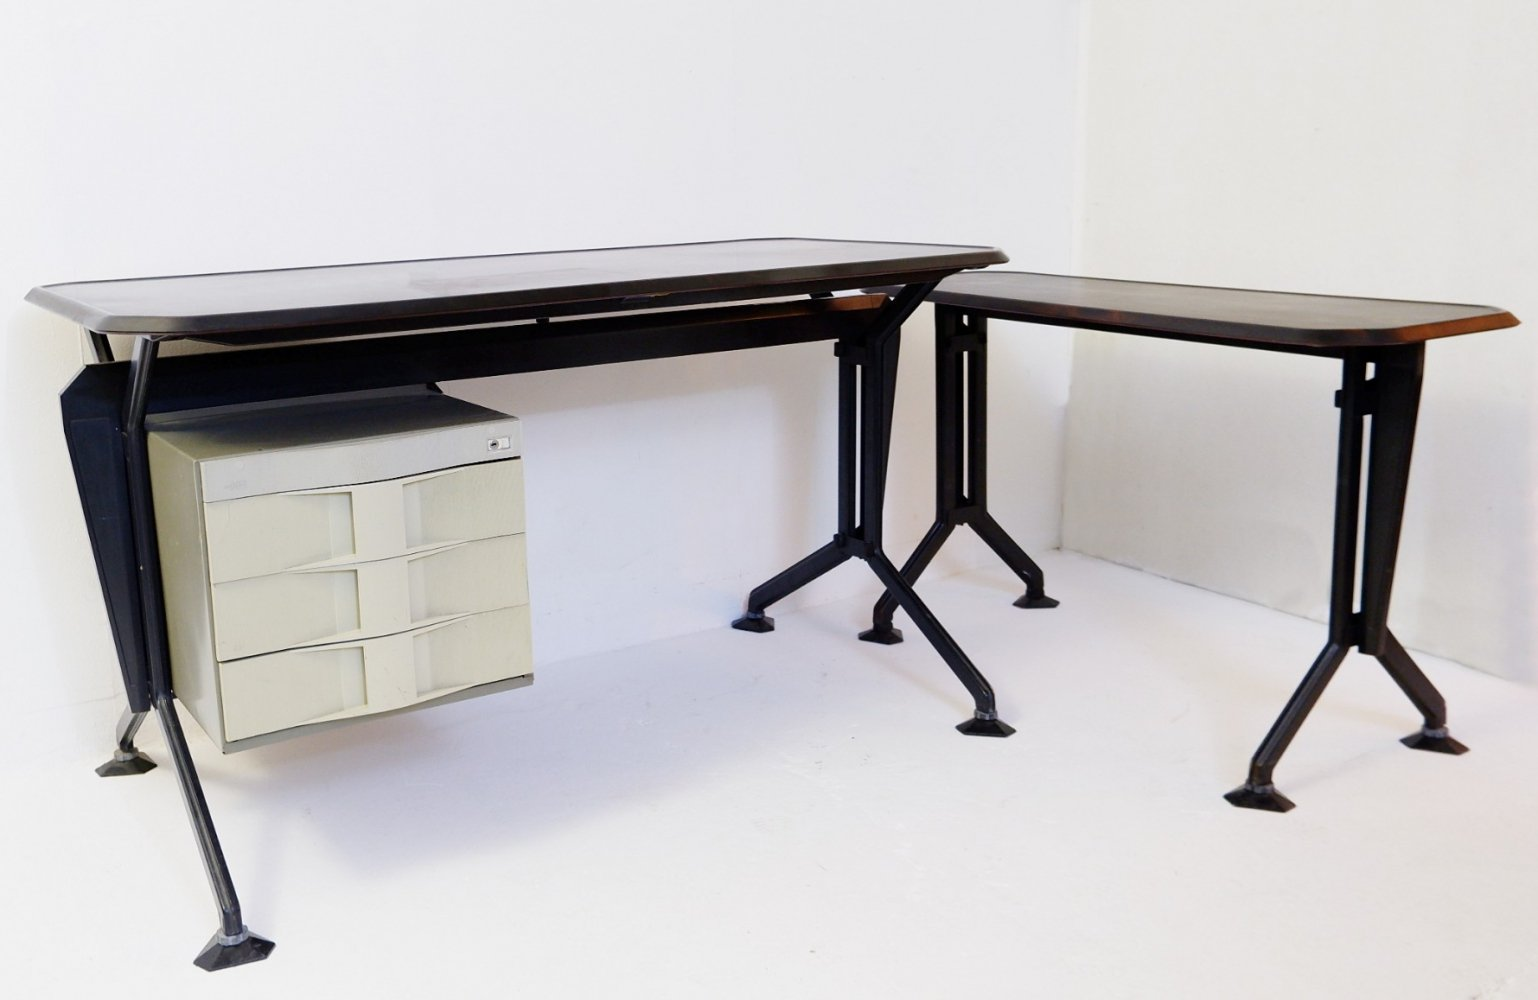 Arco Office Desk Set By Studio BBPR For Olivetti, 1963